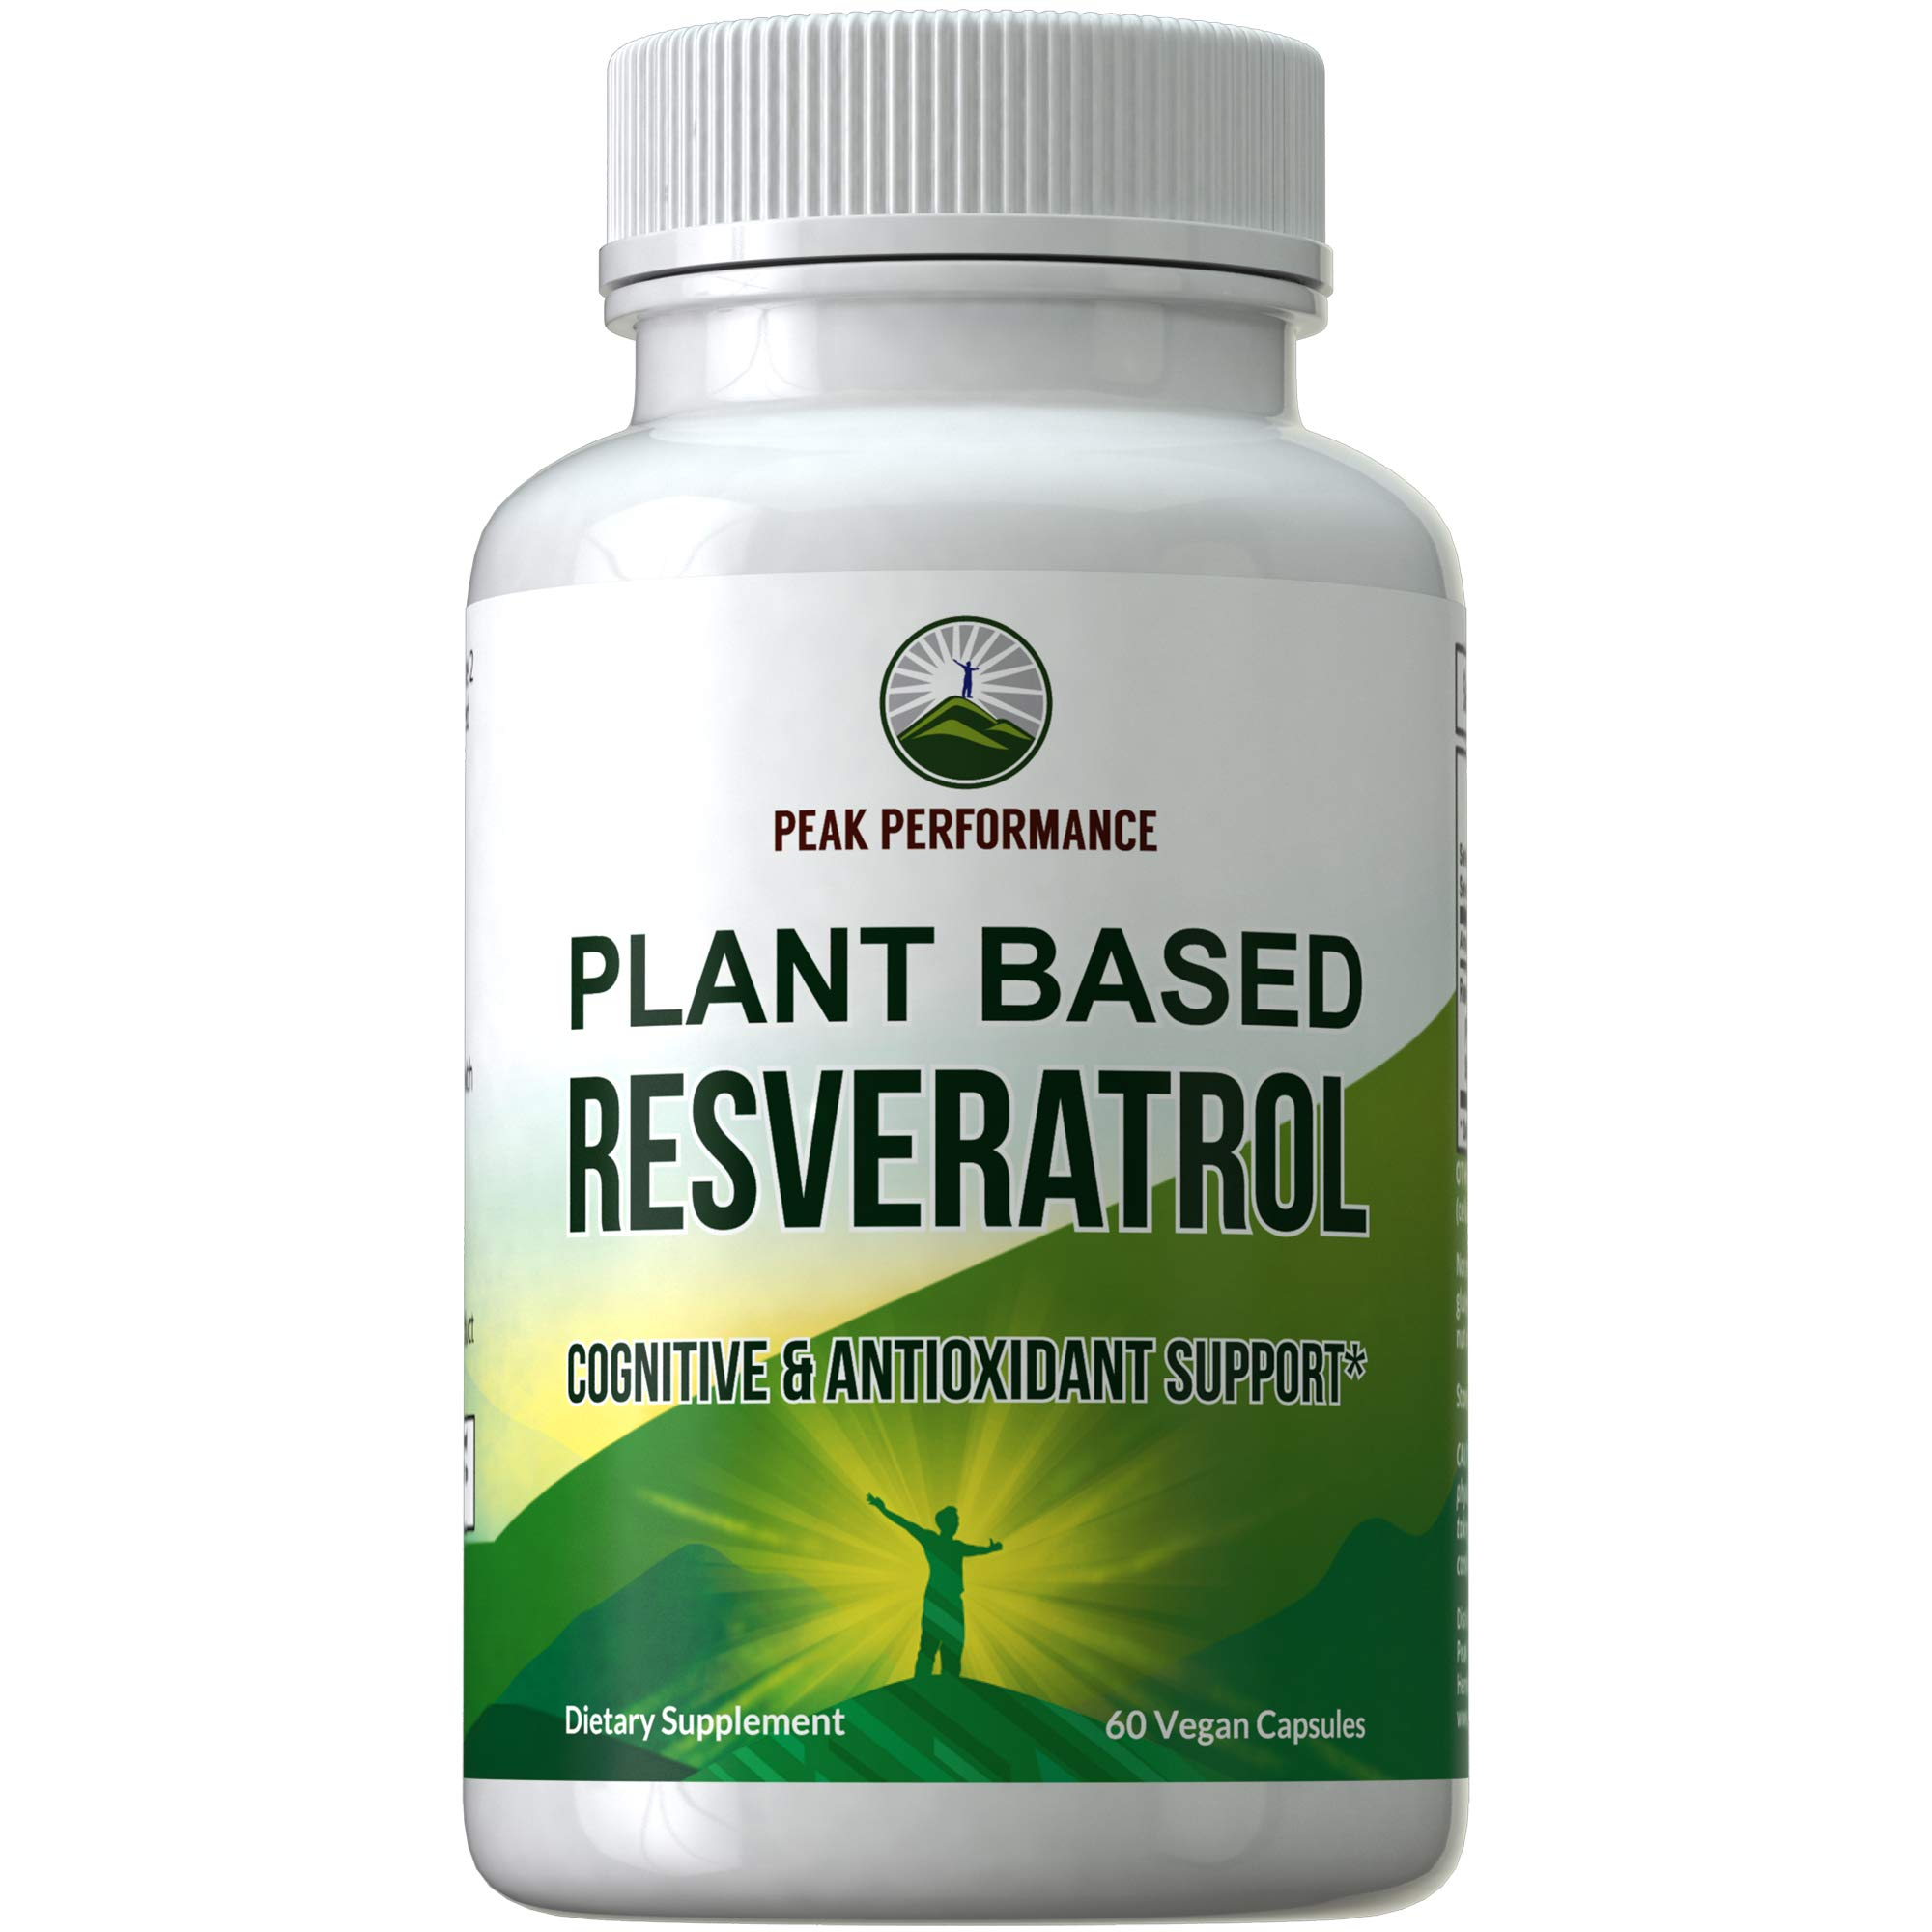 Resveratrol 500mg - Best Plant Based Resveratrol Supplement by Peak Performance. Made in USA. Capsules Rich in Polyphenols from Natural Plant Extracts. 2 Pills Equals 1000mg. Reservatrol Supplement by Peak Performance